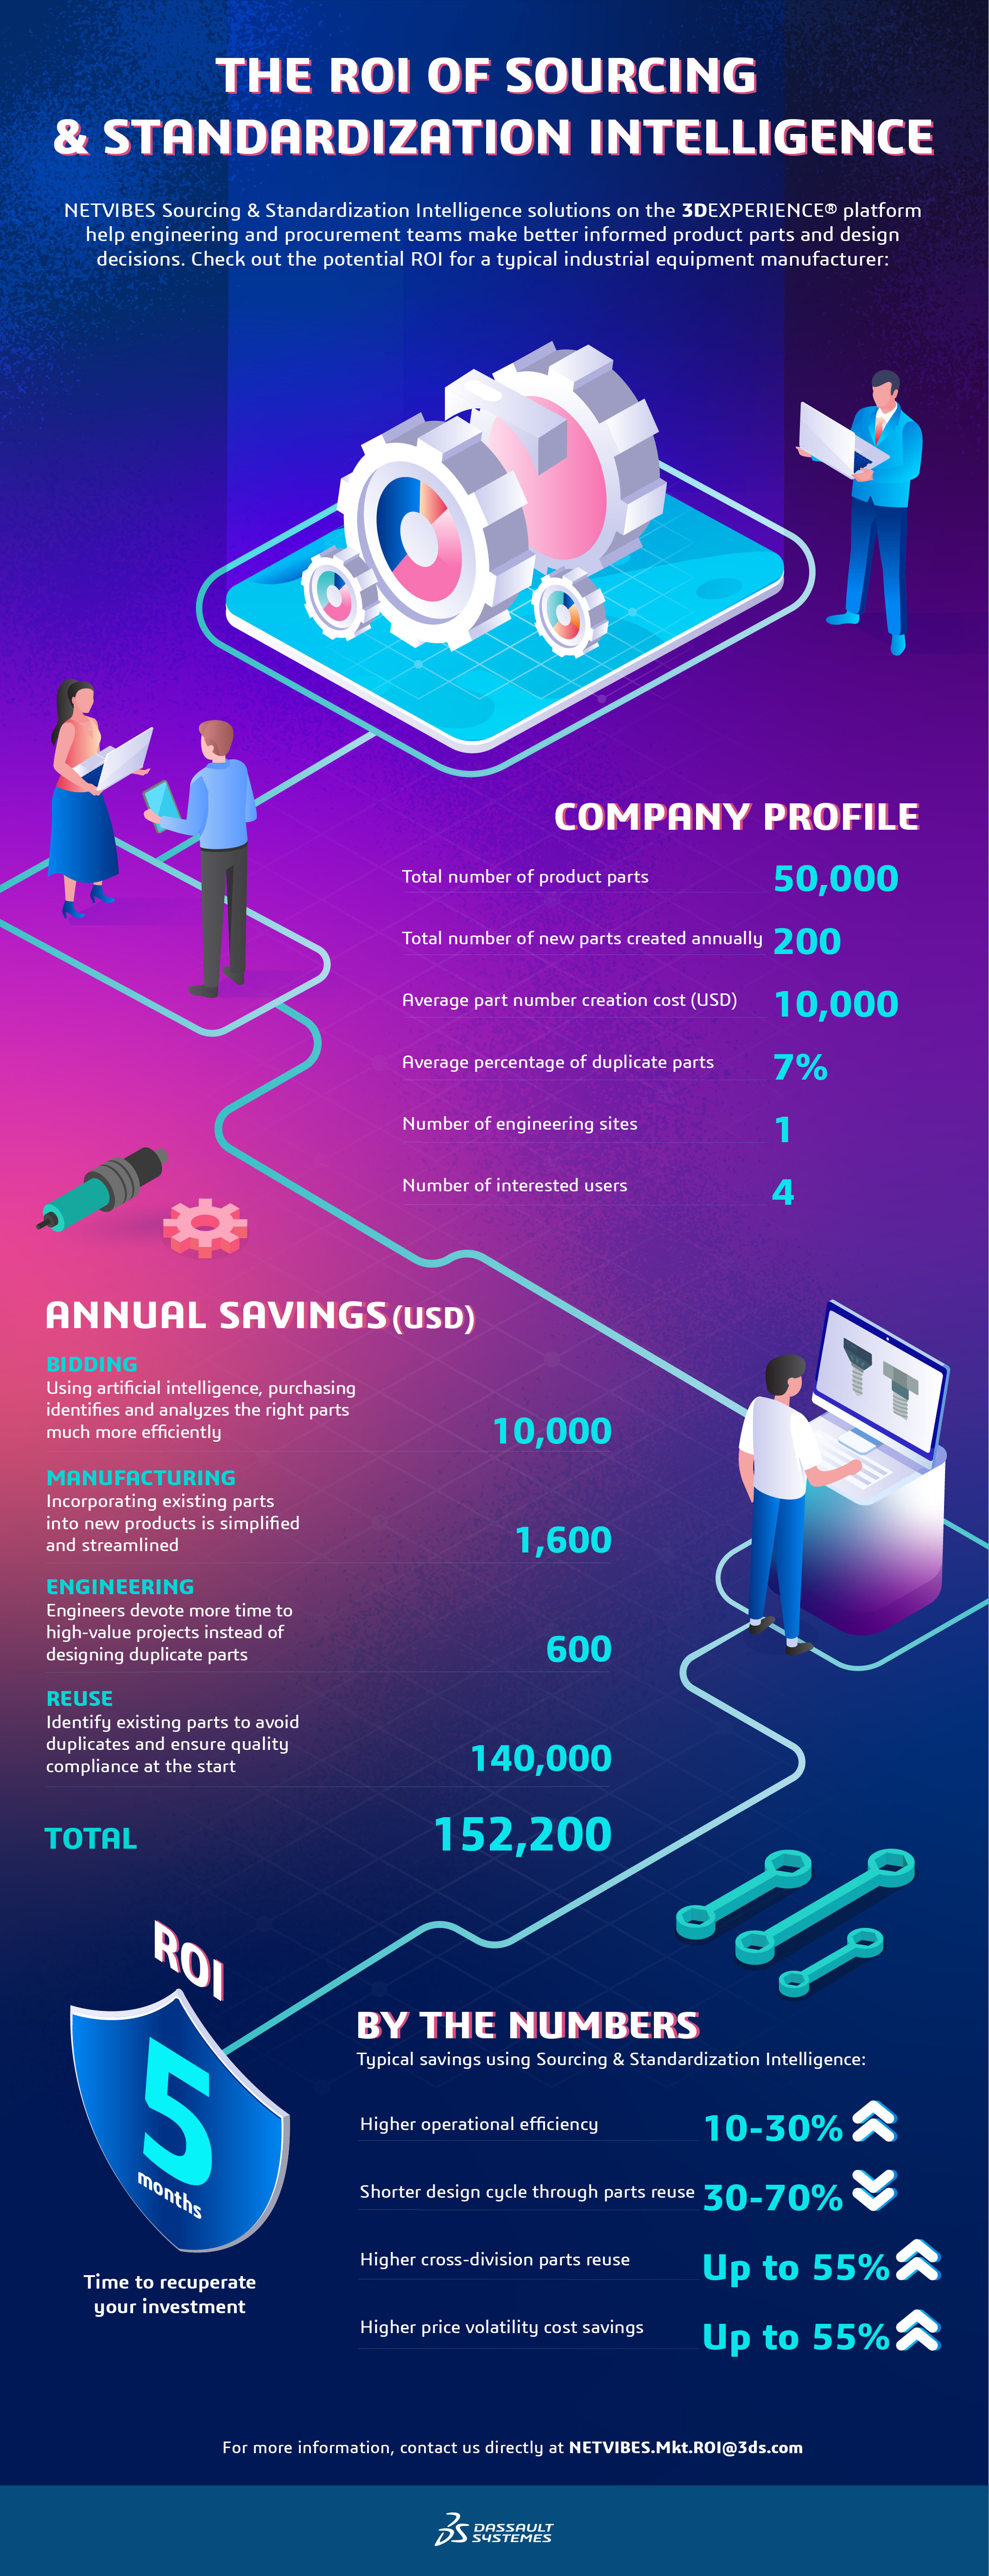 Parts Sourcing and Standardization Solutions to Optimize Product Design > Infographic on the ROI of Parts Sourcing & Standardization Intelligence > Dassault Systèmes®